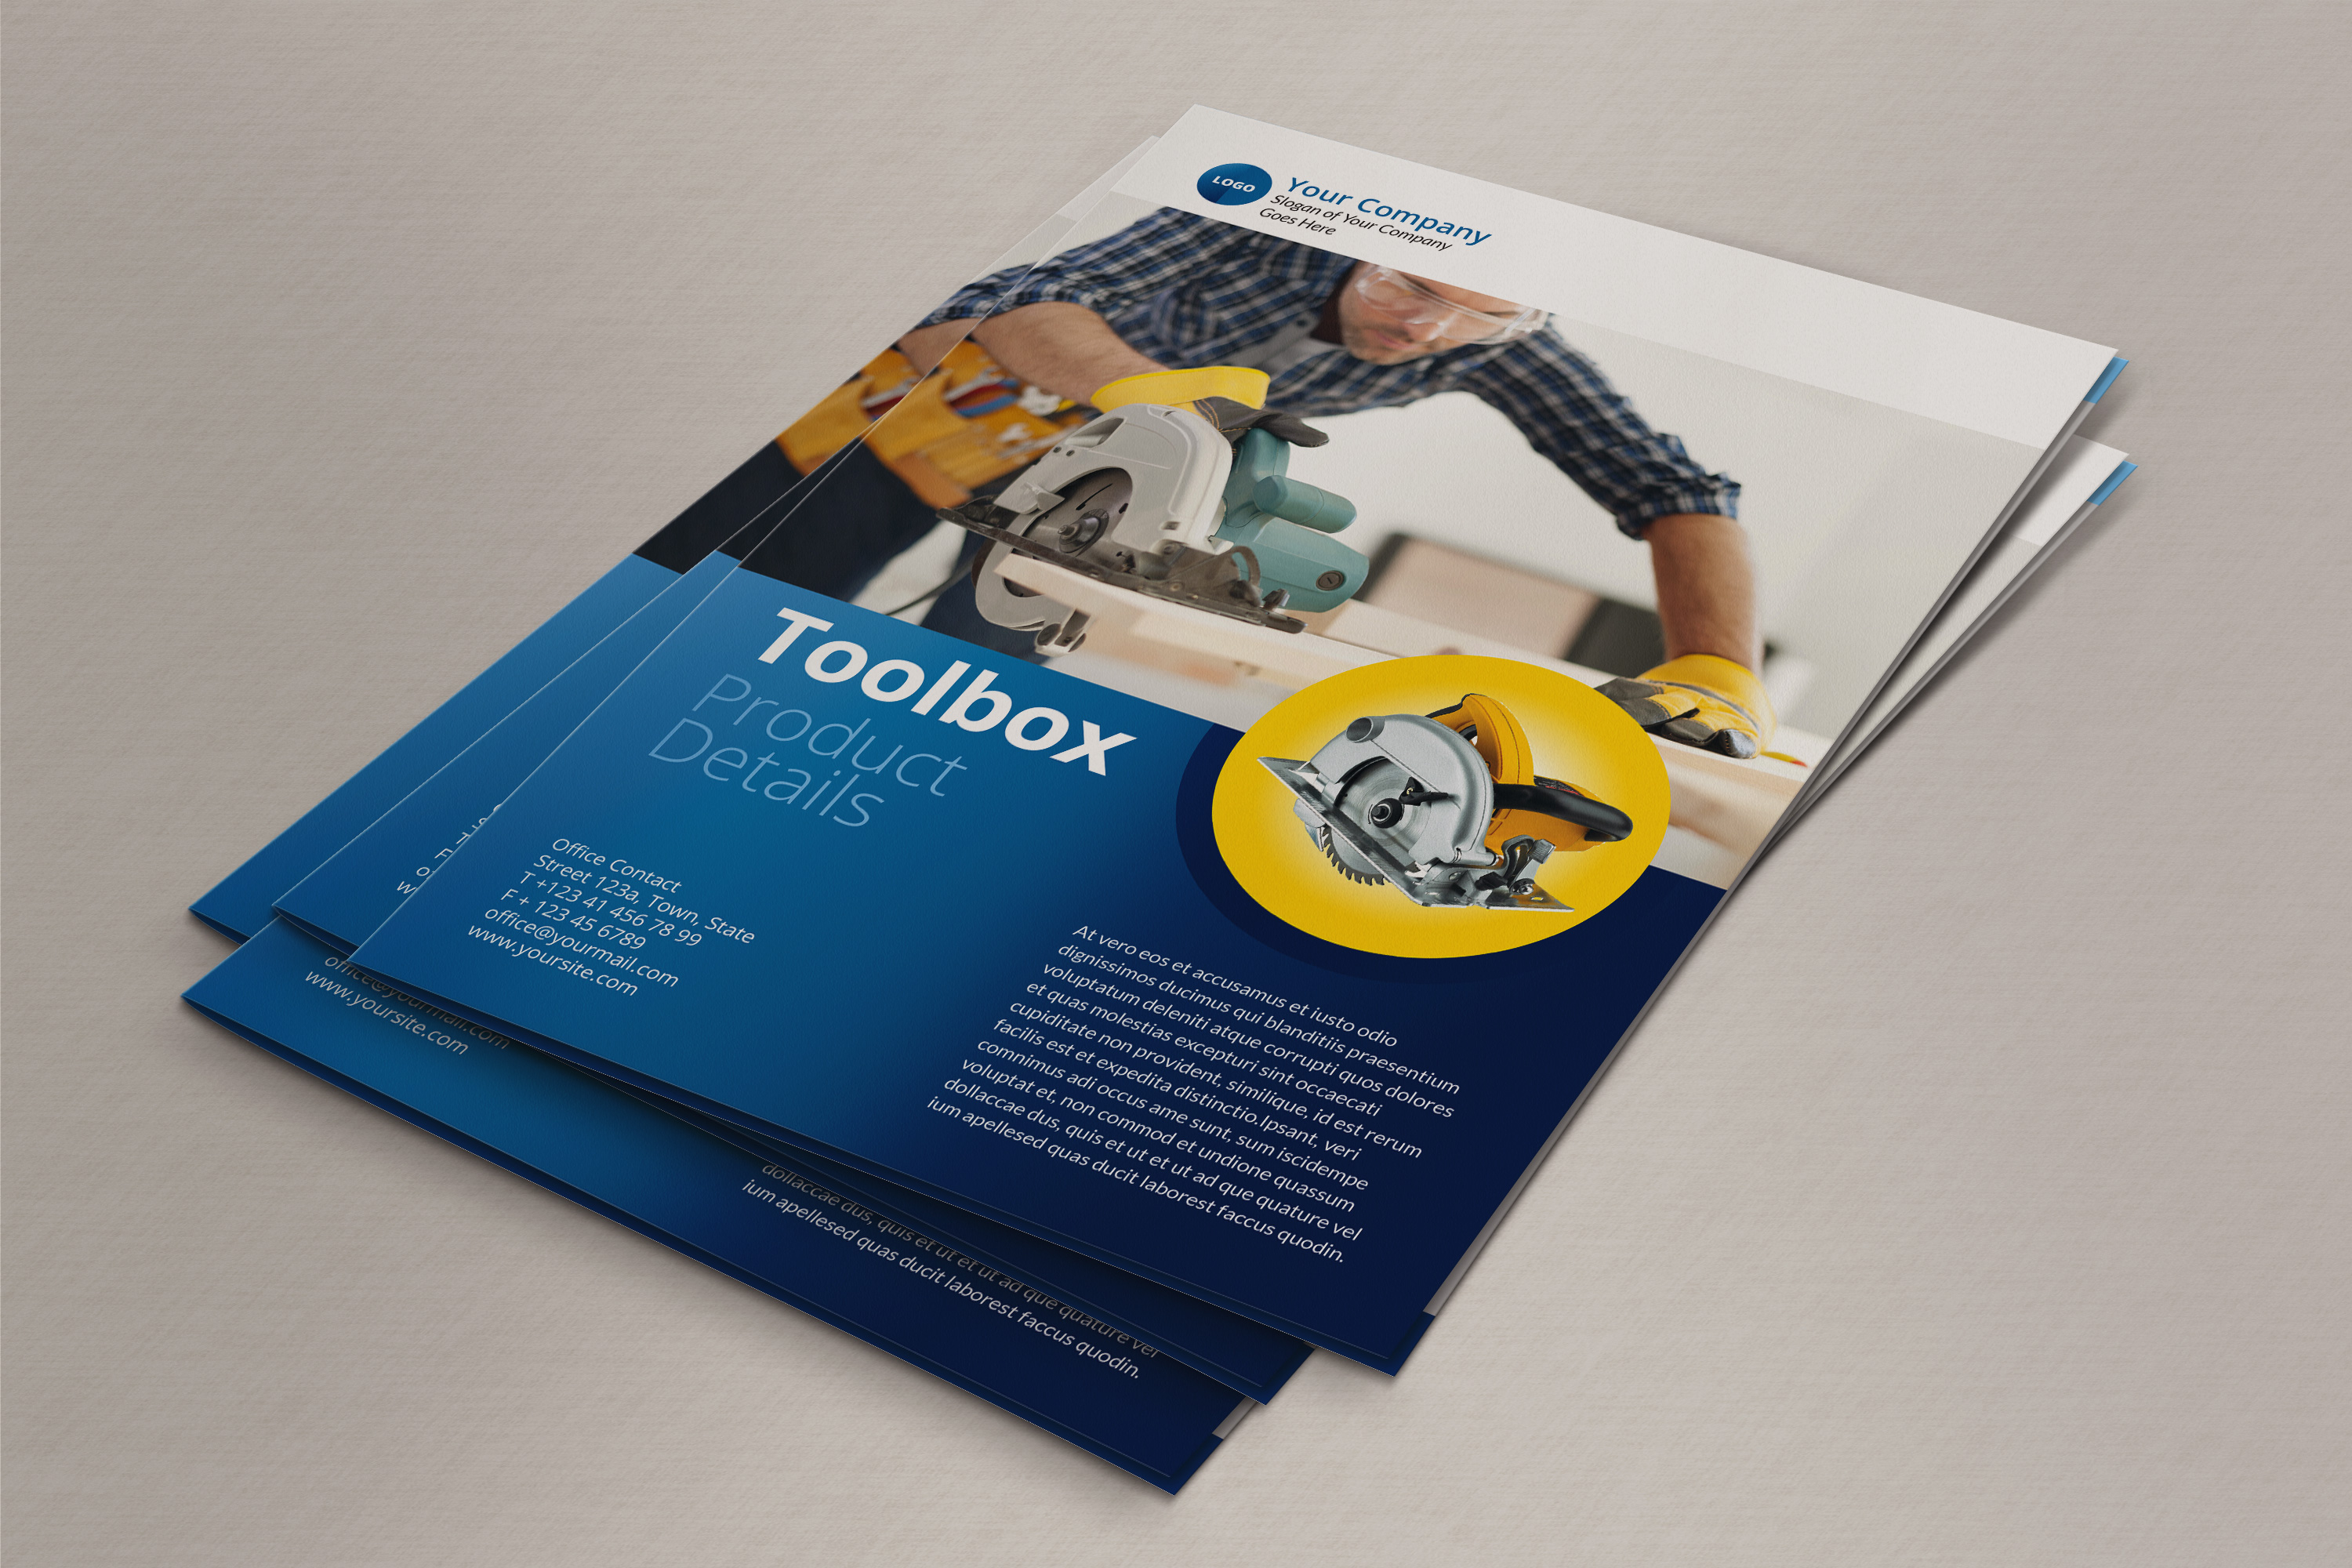 Bi fold brochure indesign template for Bi fold brochure template indesign free